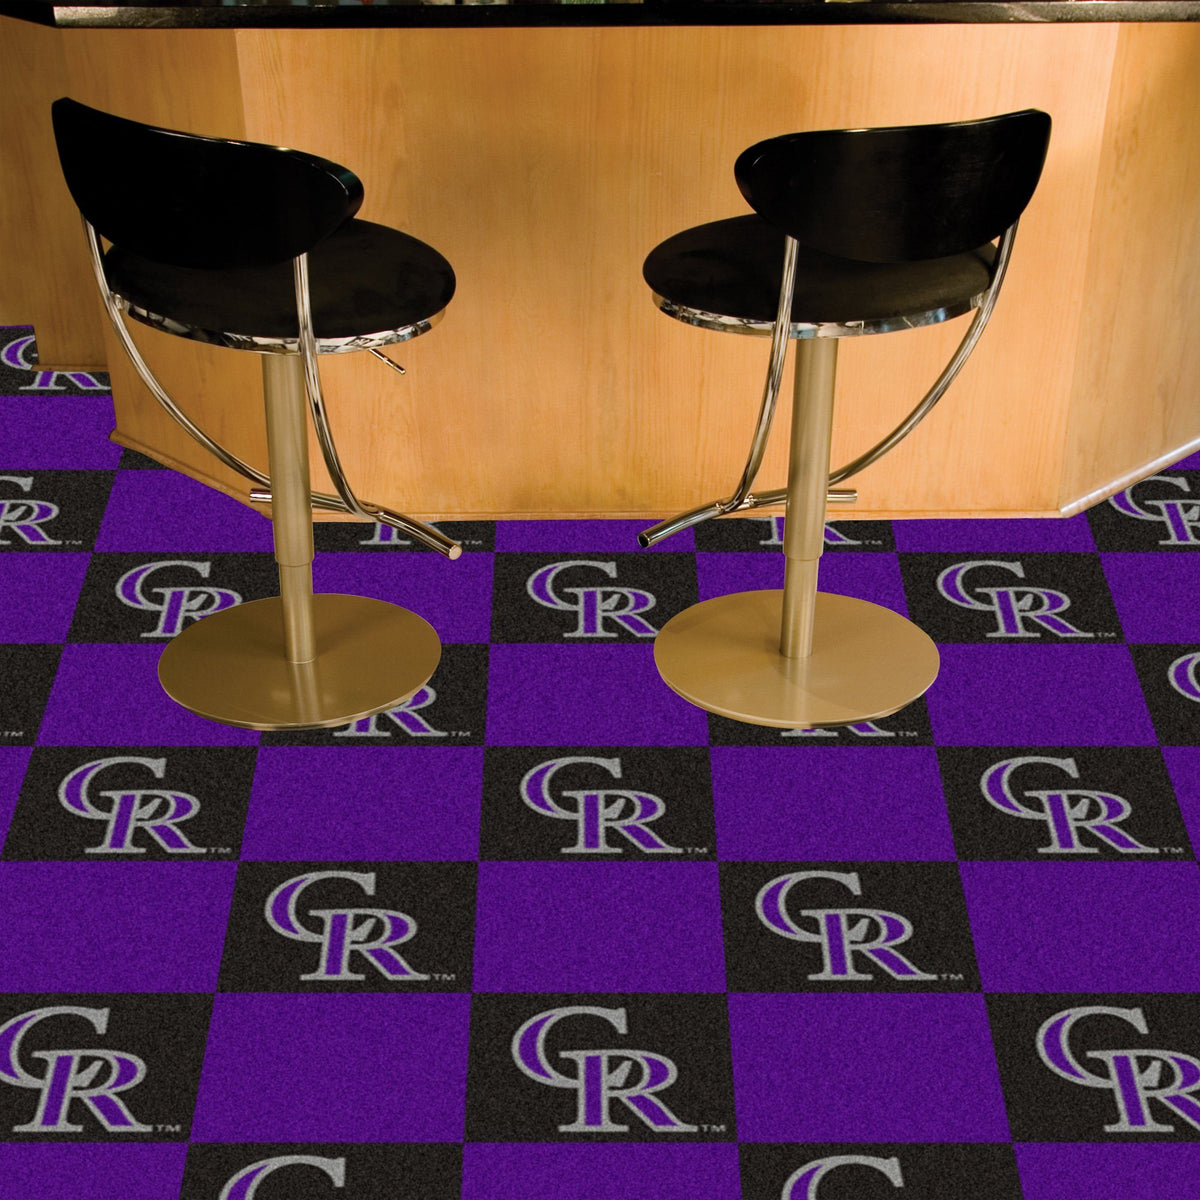 MLB - Team Carpet Tiles MLB Mats, Carpet Tile Flooring, Team Carpet Tiles, MLB, Home Fan Mats Colorado Rockies